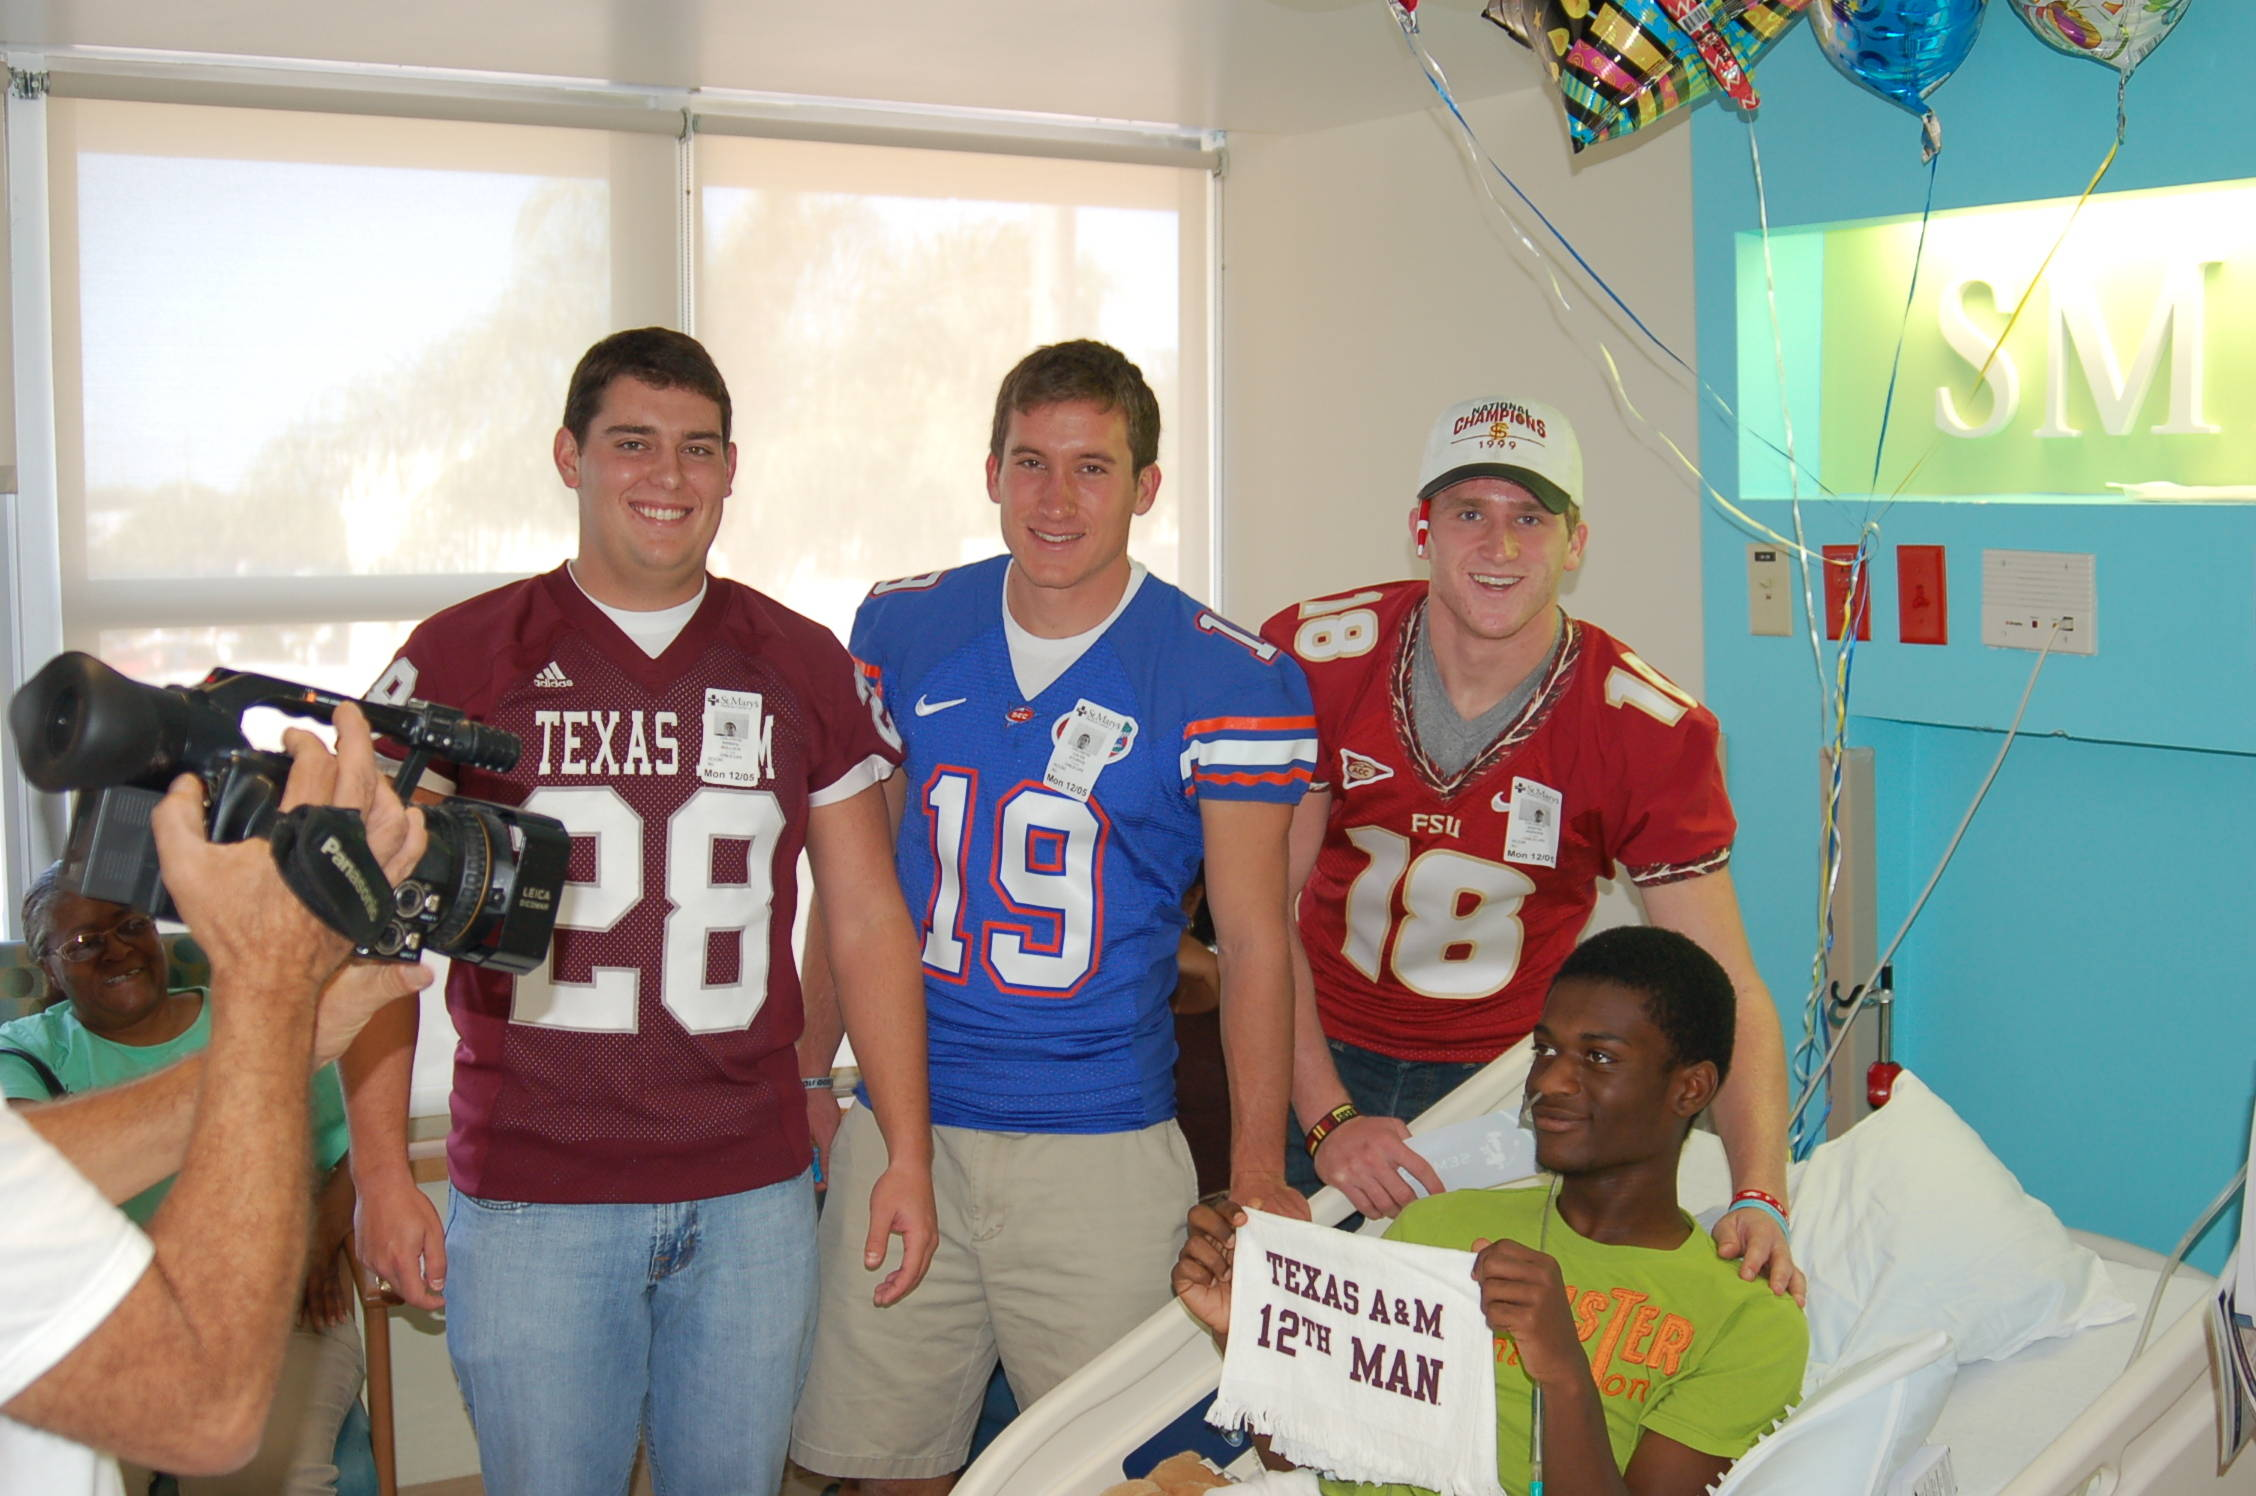 Lou Groza finalists Randy Bullock, Caleb Sturgis and Dustin Hopkins lifted the spirits of the patients at the Children's Hospital at St. Mary's Medical Center on Monday.